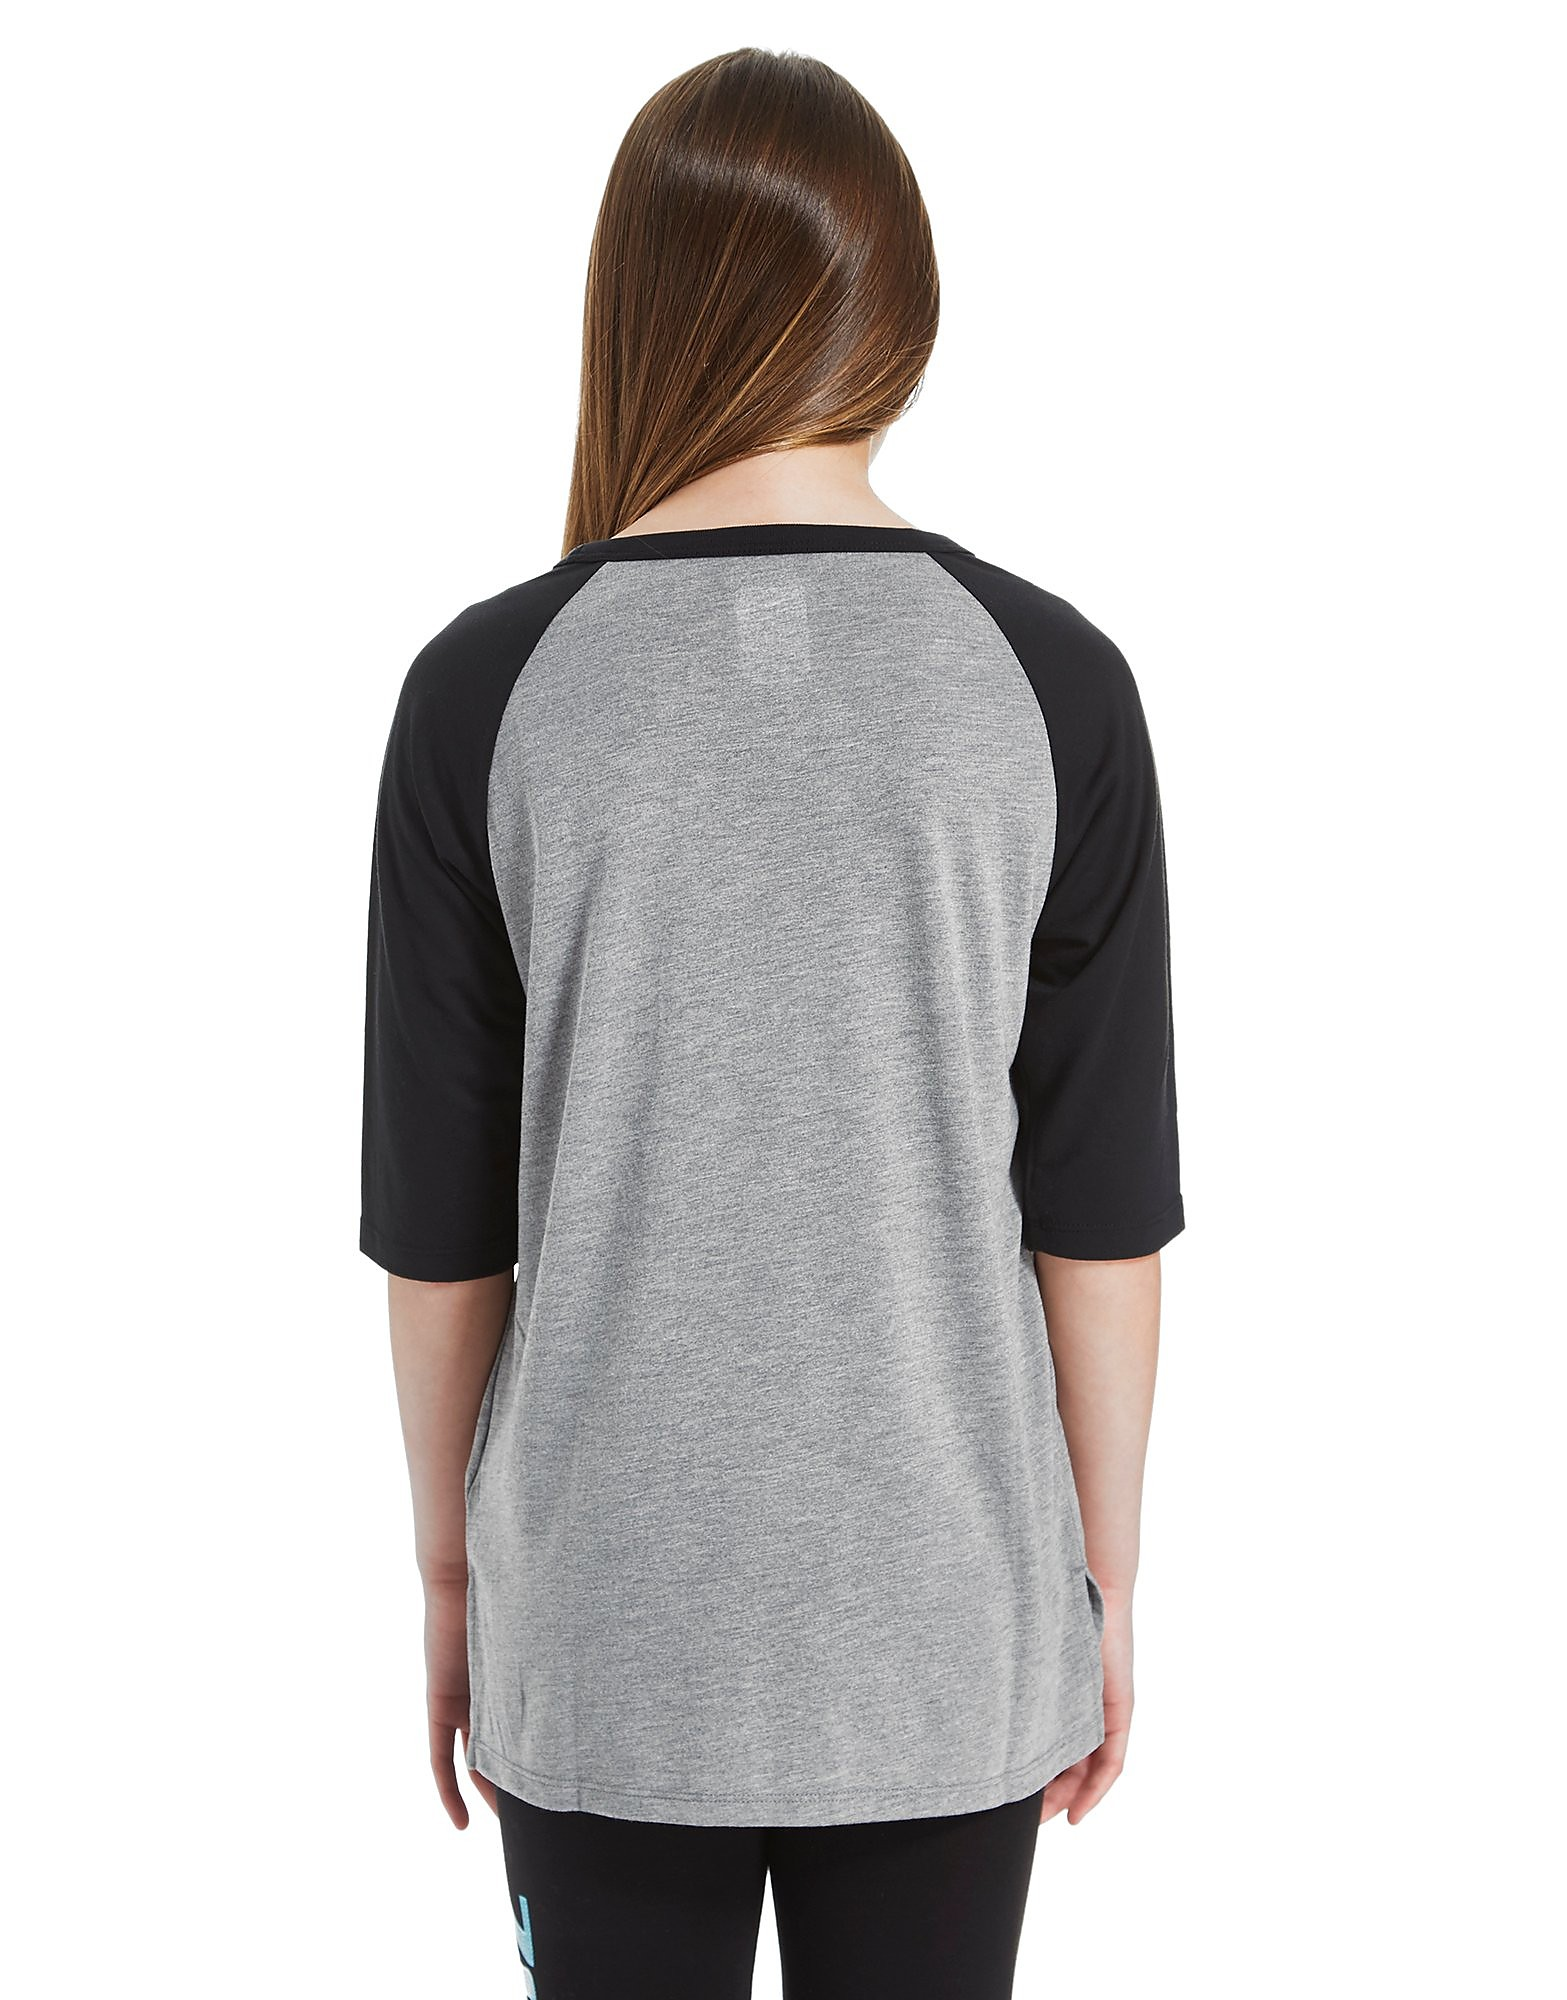 Nike Girls' Lounge T-Shirt Junior